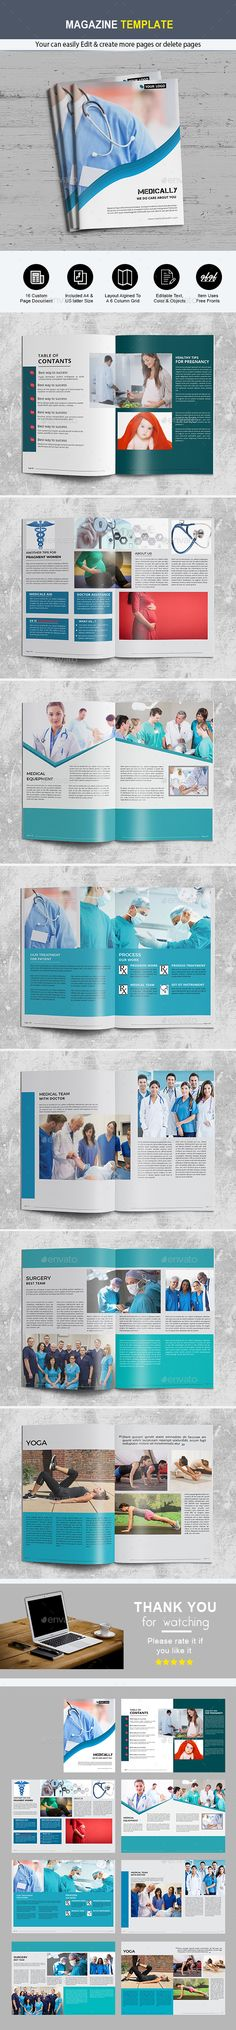 Health Magazine Template - Magazines Print Templates Download here : https://graphicriver.net/item/health-magazine-template/21320249?s_rank=53&ref=Al-fatih